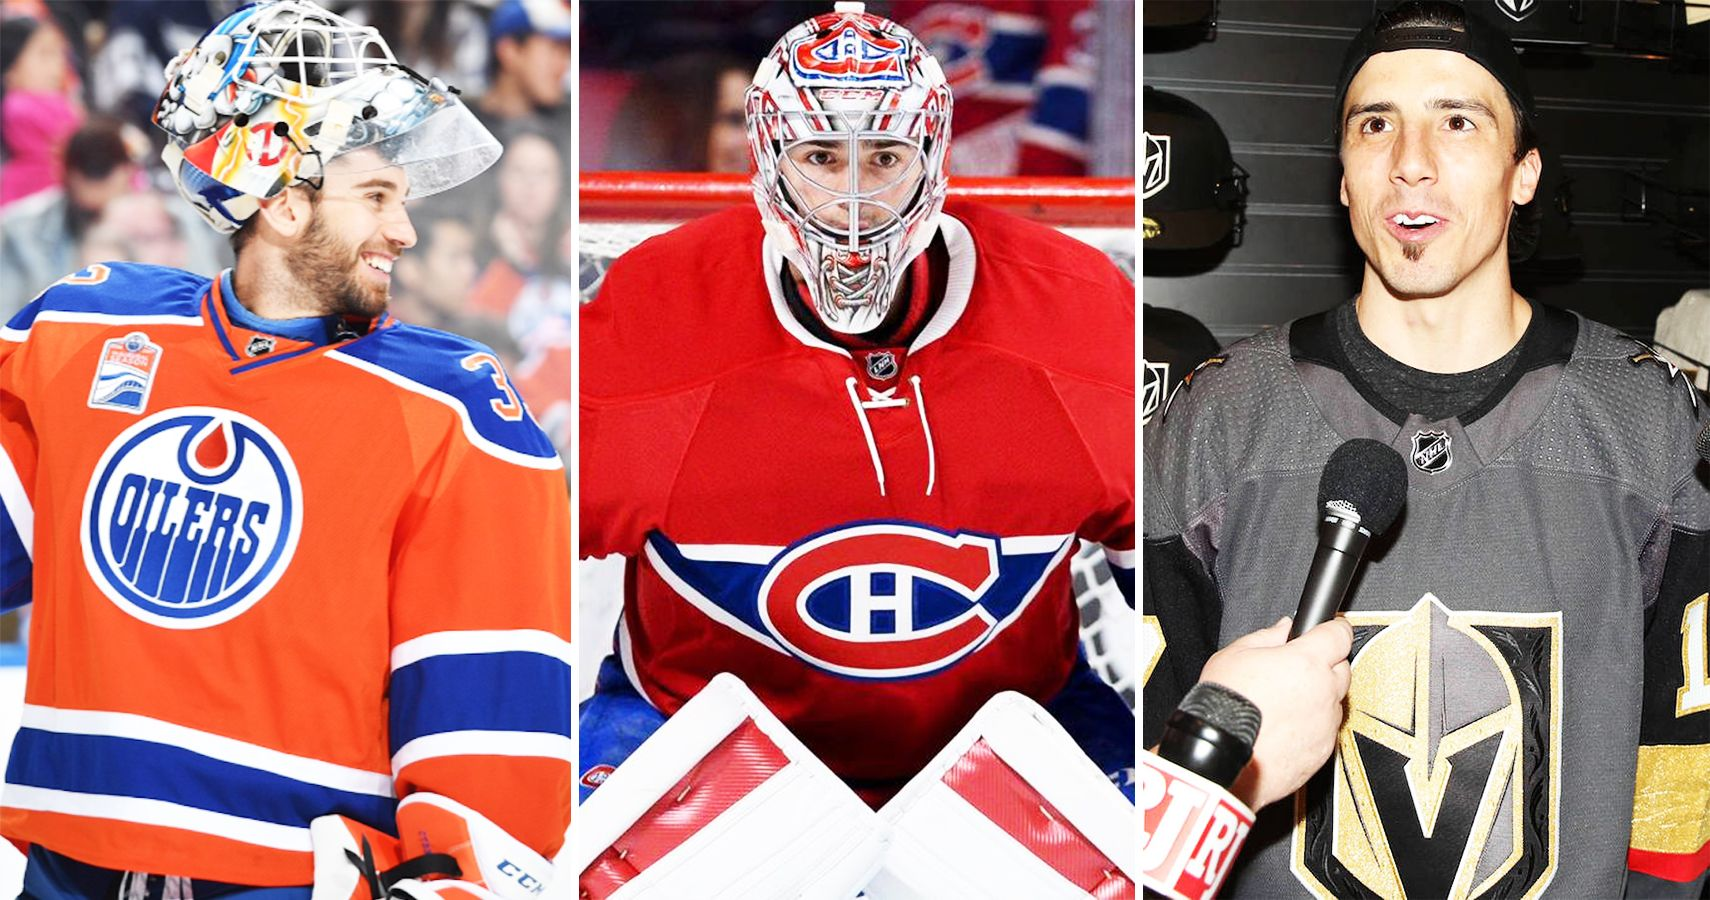 Ranking This NHL Season's Starting Goalies From Worst to Best